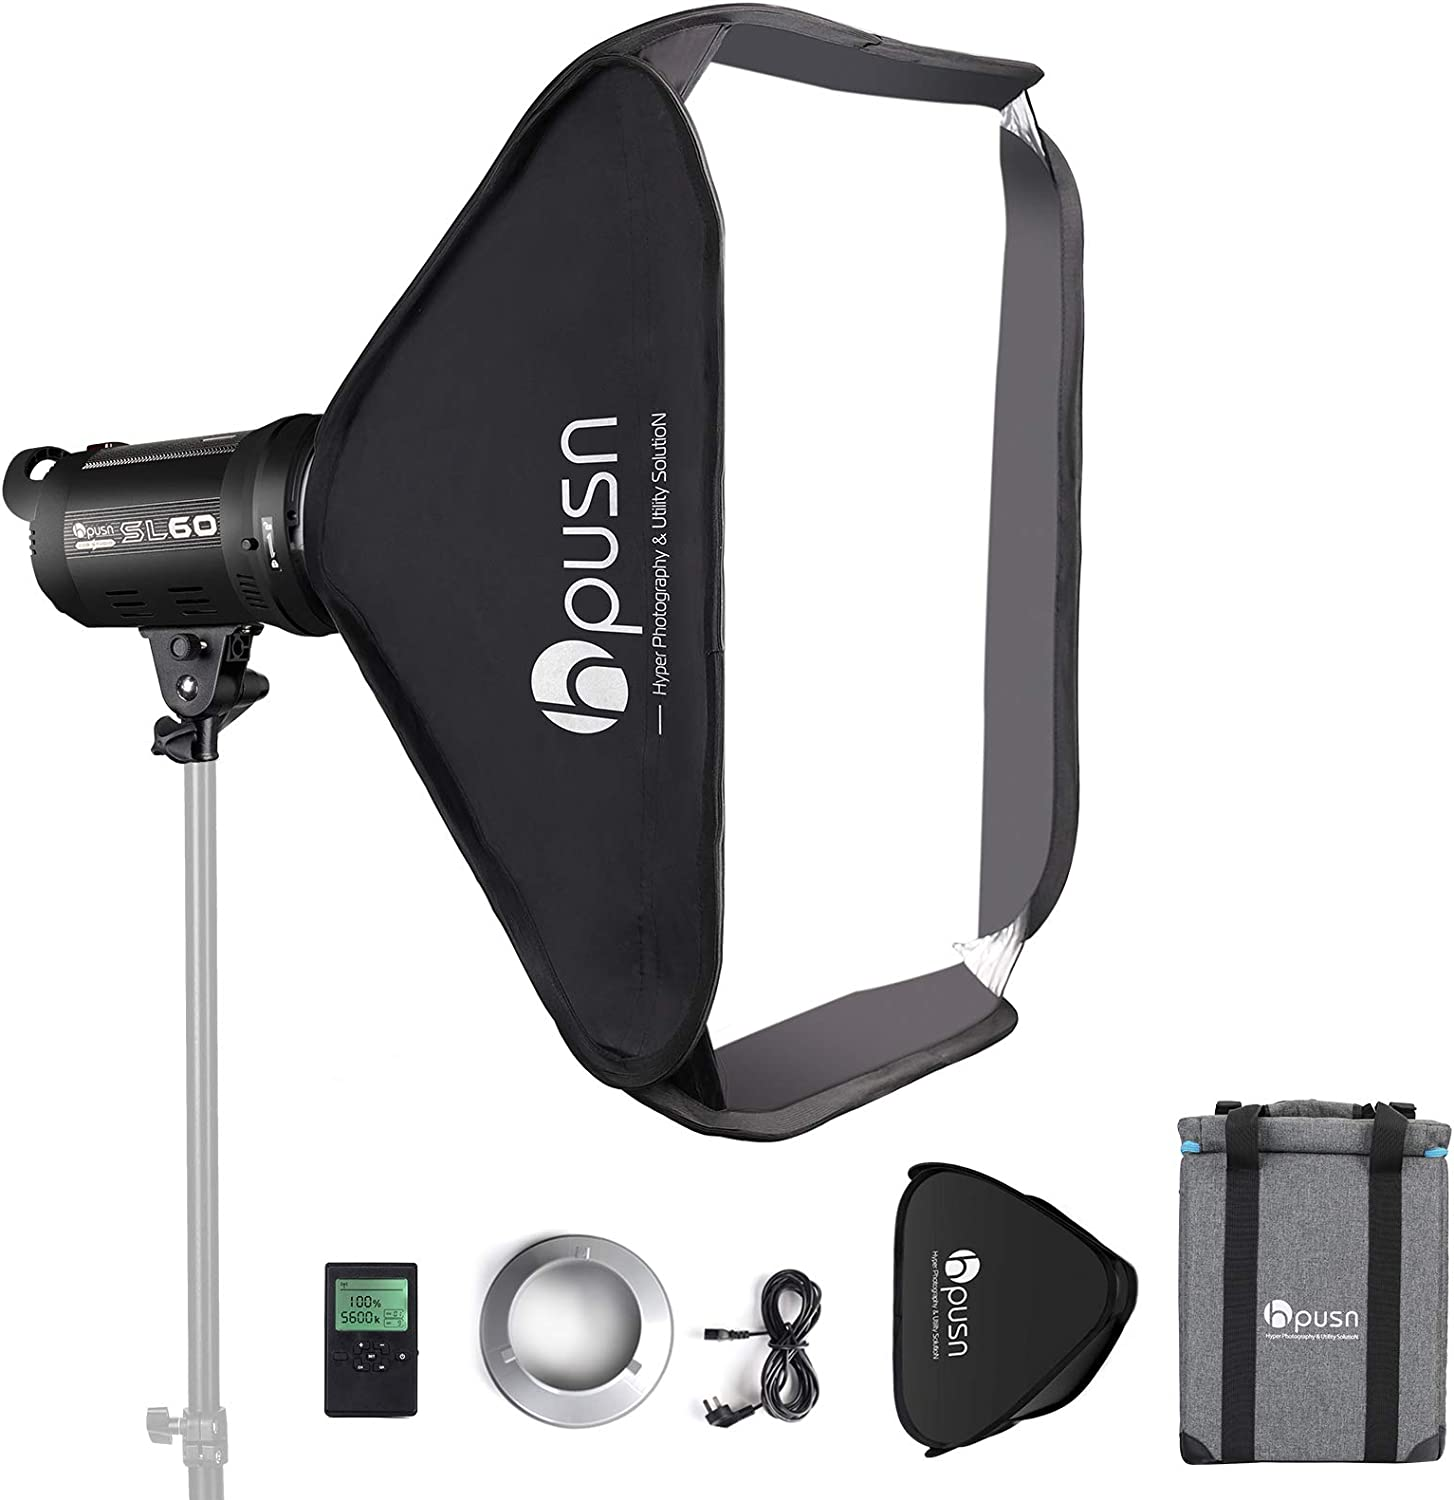 HPUSN OFFicial mail order SL-60W In stock 60W CRI 95+ LED Video 90+ R Light TLCI with 5600K